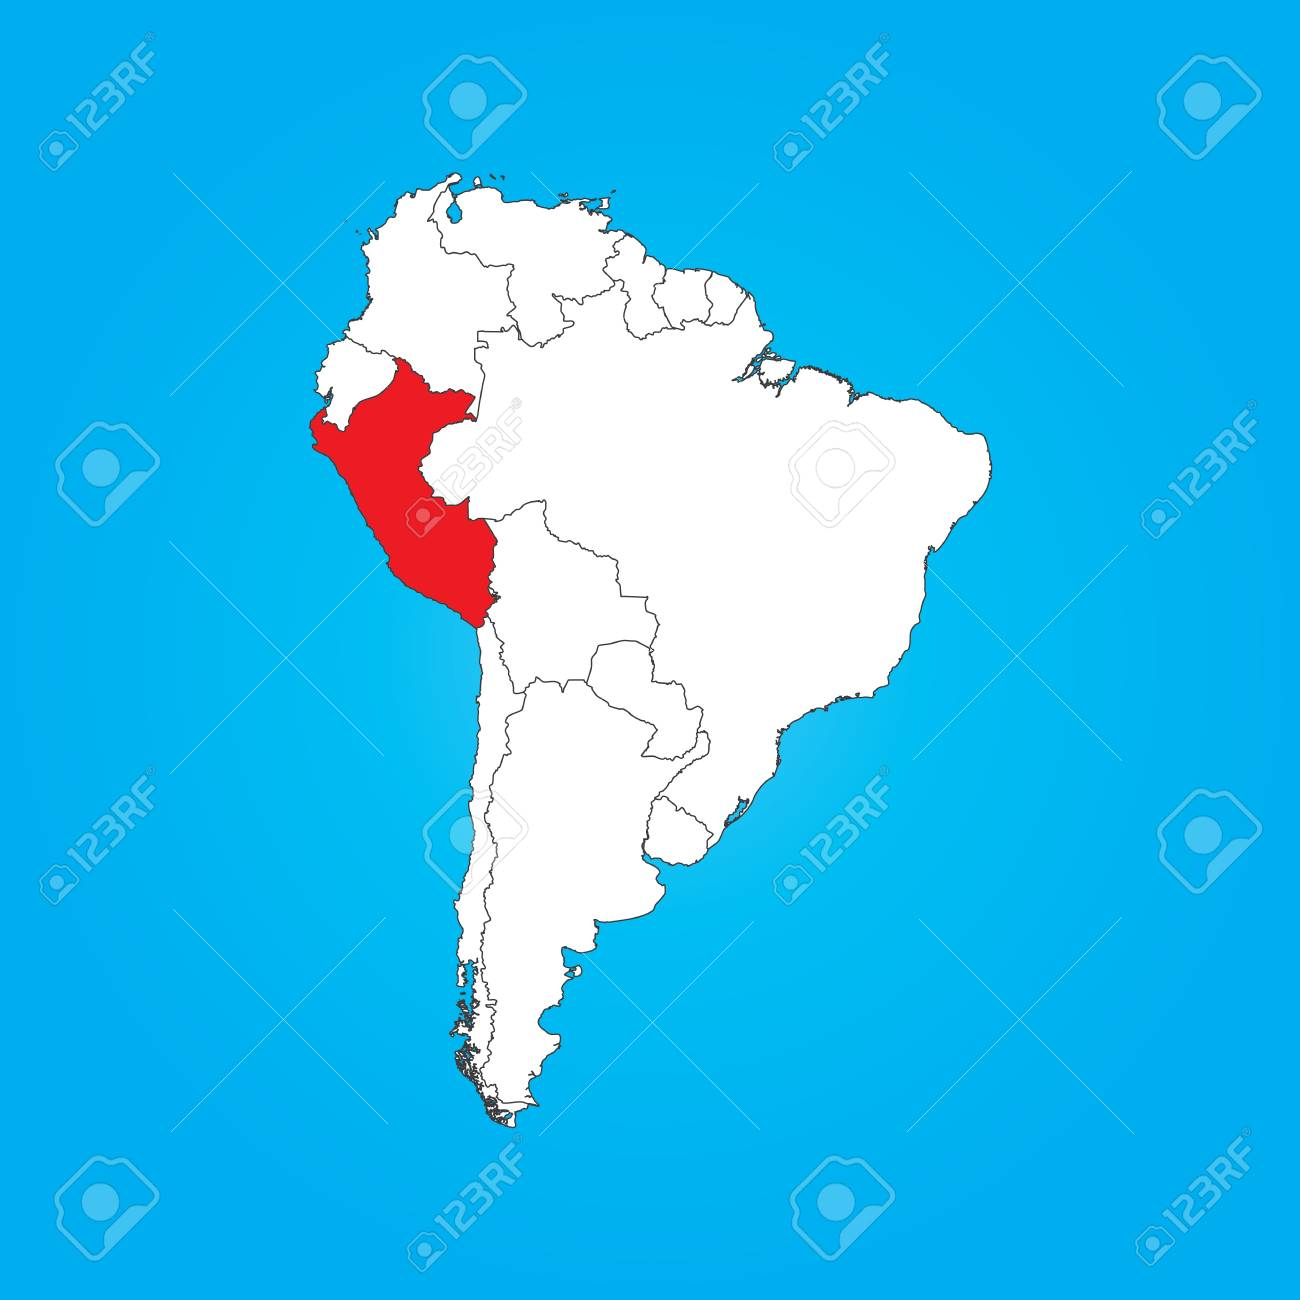 A Map of South America with a selected country of Peru Images Of Peru South America Map on map of mexico, maps in south america, colombia map in america, map of africa, costa rica, map of patagonia south america, map of amazon basin south america, puerto rico, map of south america with argentina, machu picchu, map of the galapagos islands south america, lima south america, top 10 poorest cities in america, machu picchu peru south america, close up map of south america, peru in south america, nicaragua on map of south america, map of santiago south america, map of atacama desert south america, information on peru south america, map of aruba and south america, map of trinidad and tobago south america, political map of south america,